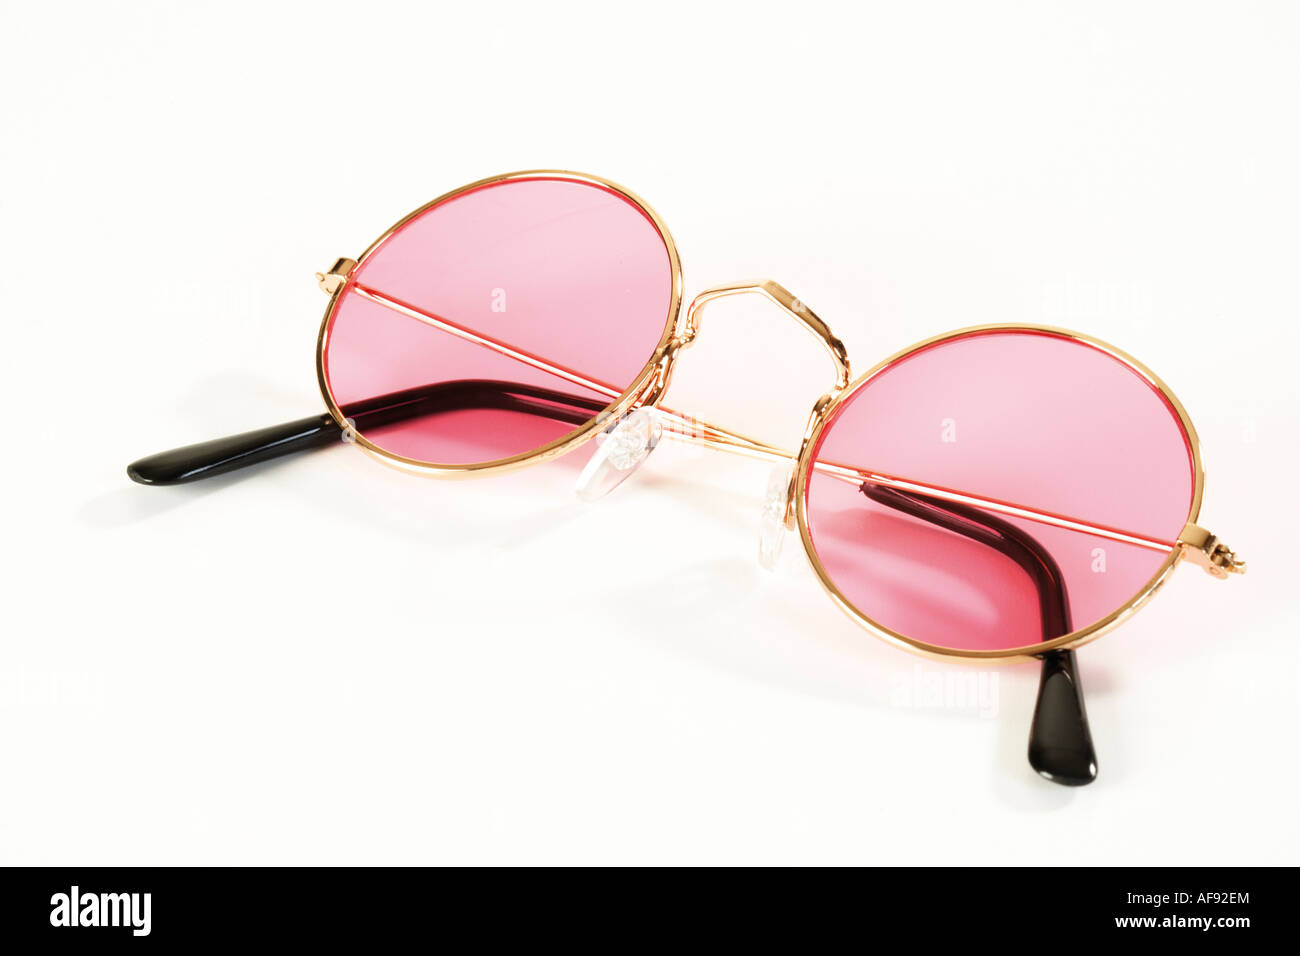 Pink metal-rimmed spectacles - Stock Image